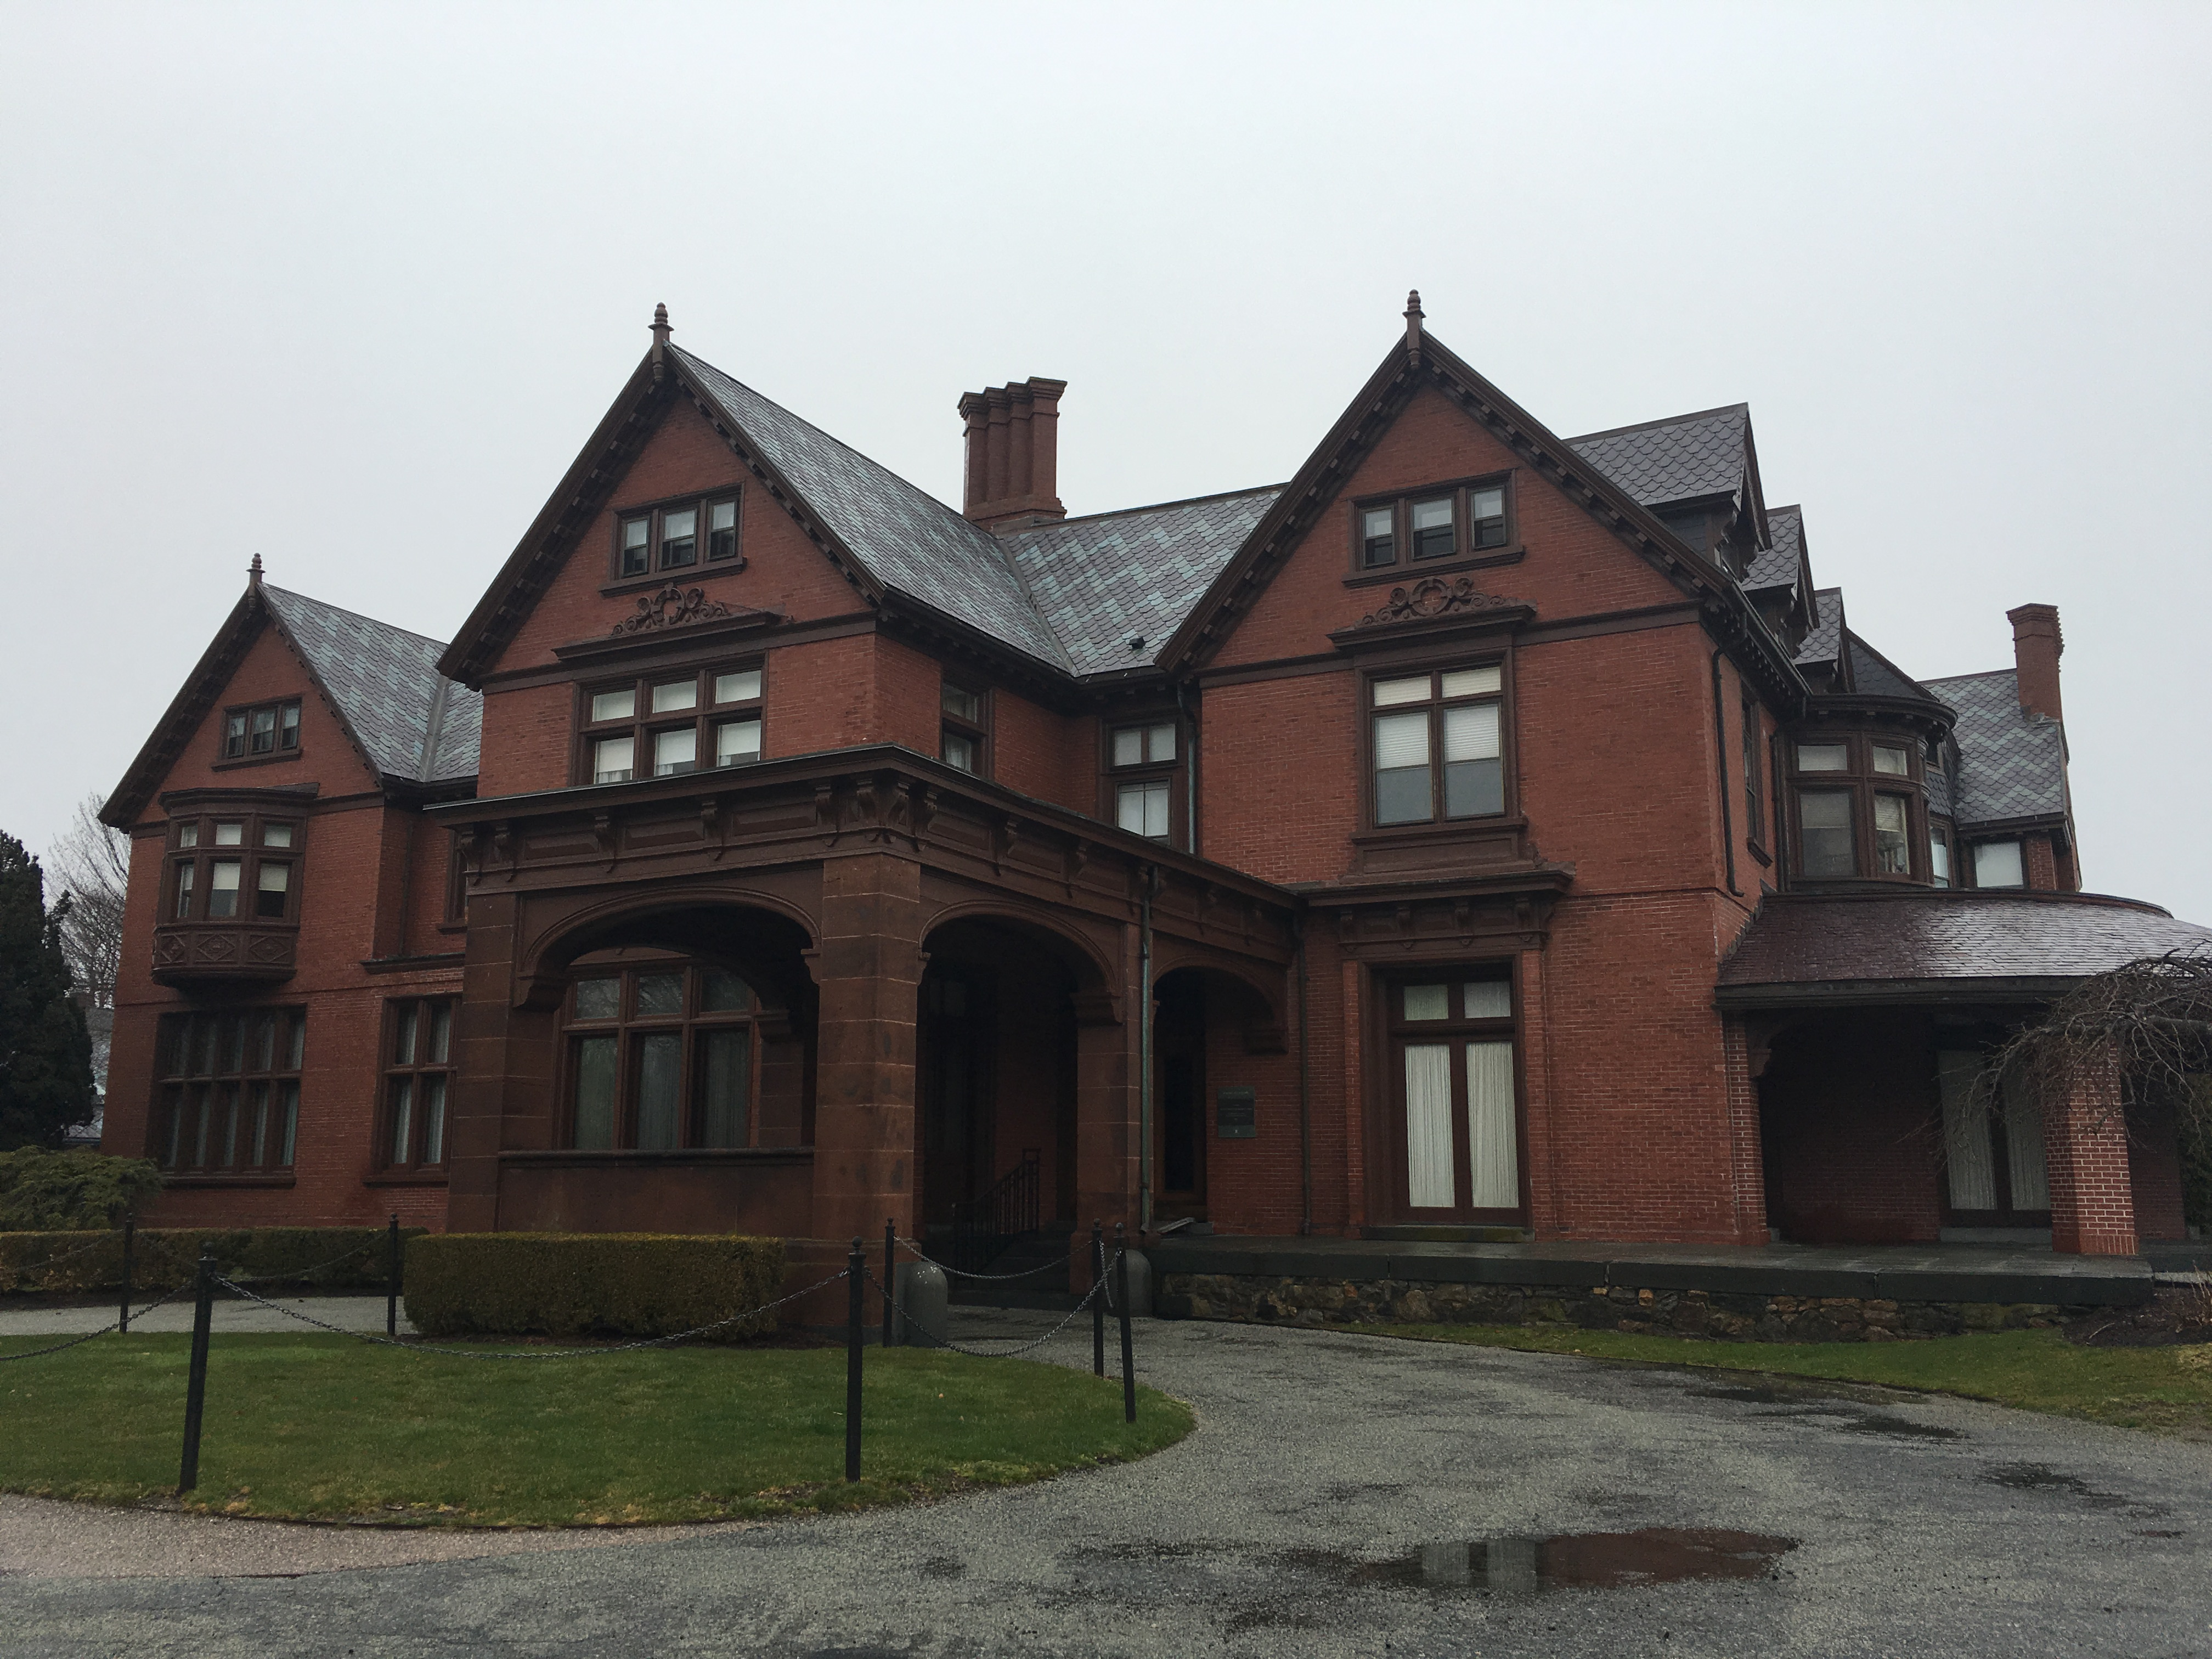 The front of Fairlawn Estate facing Bellevue Avenue.